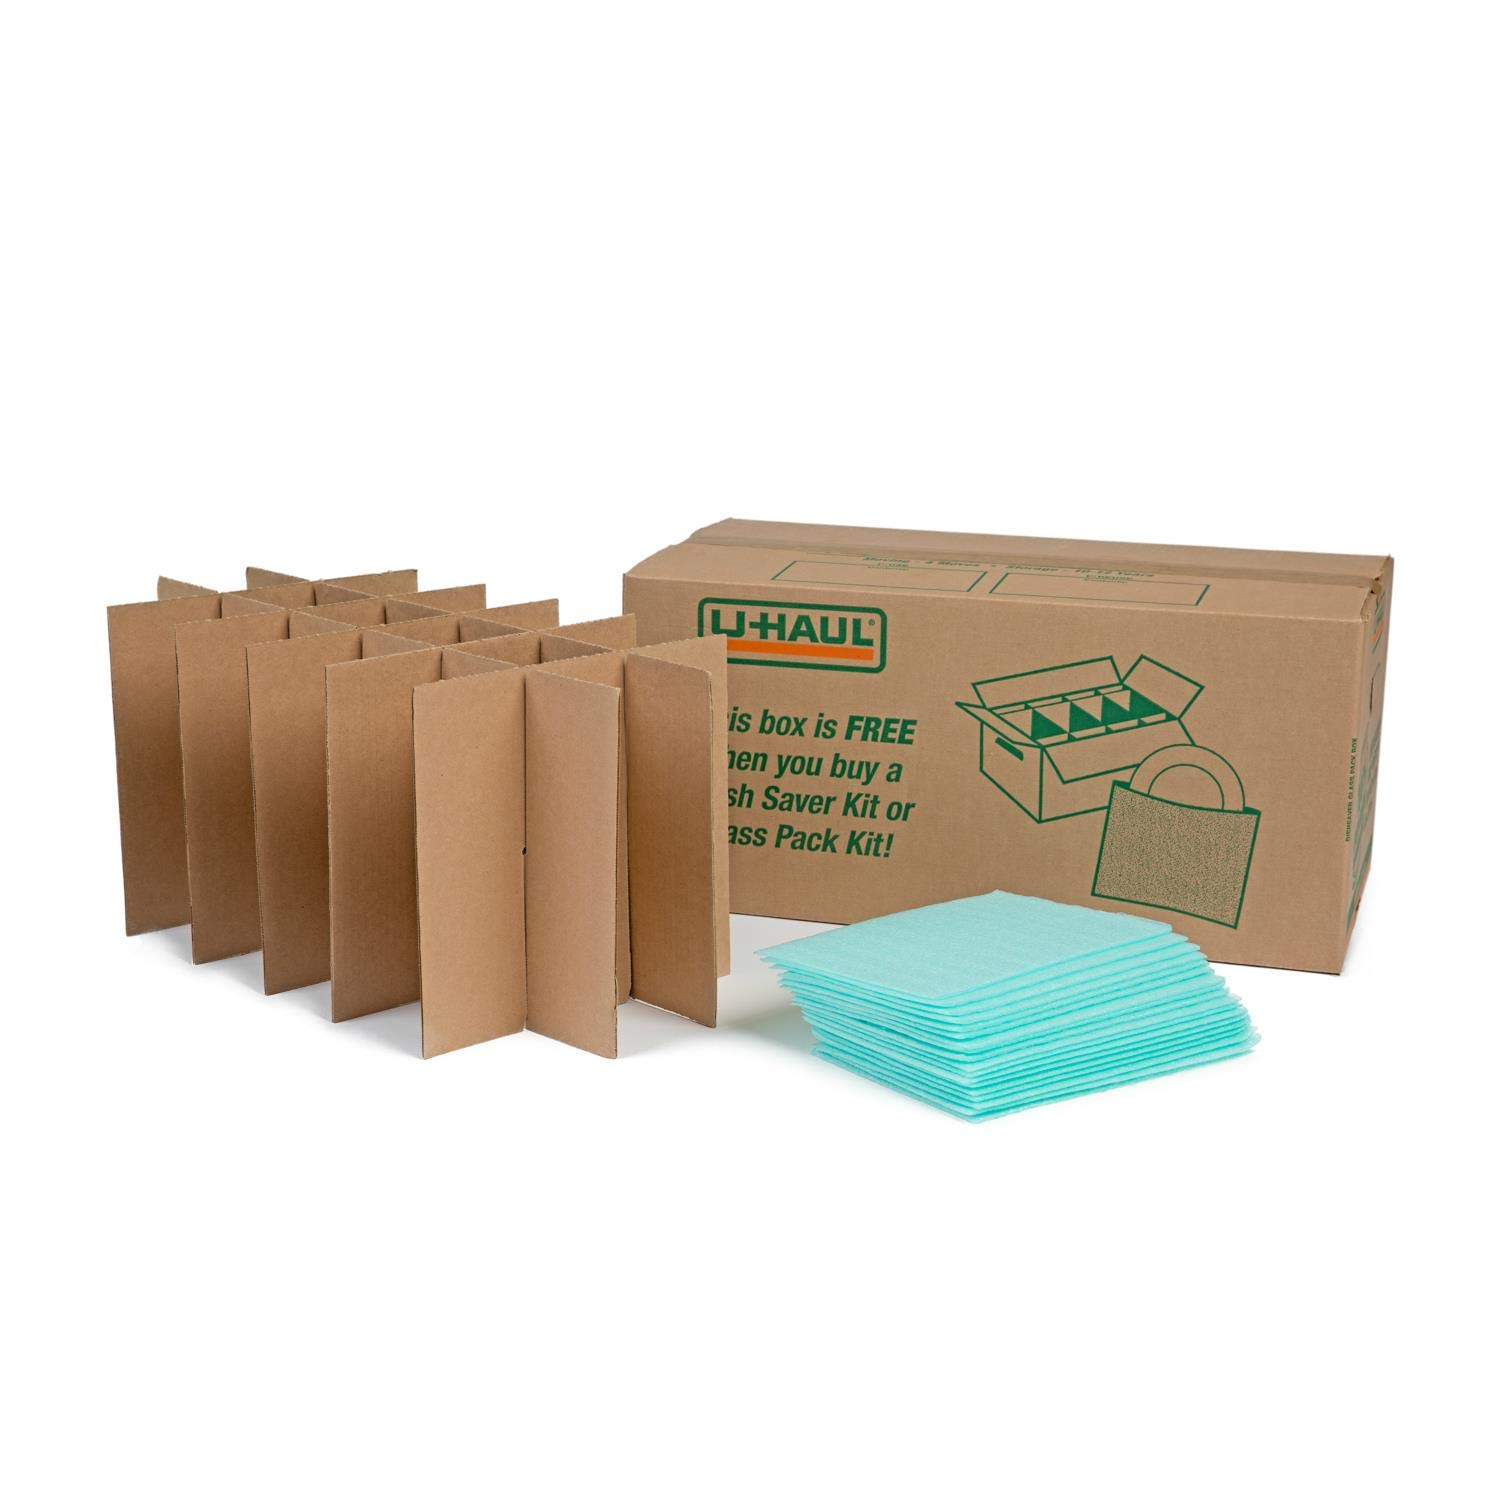 U-Haul Glass Packing Kit for Glasses and Stemware - Includes 1 Box, 1 Cell Divider Unit, and 18 Assorted Foam Pouches (Value Pack of 3) by U-Haul